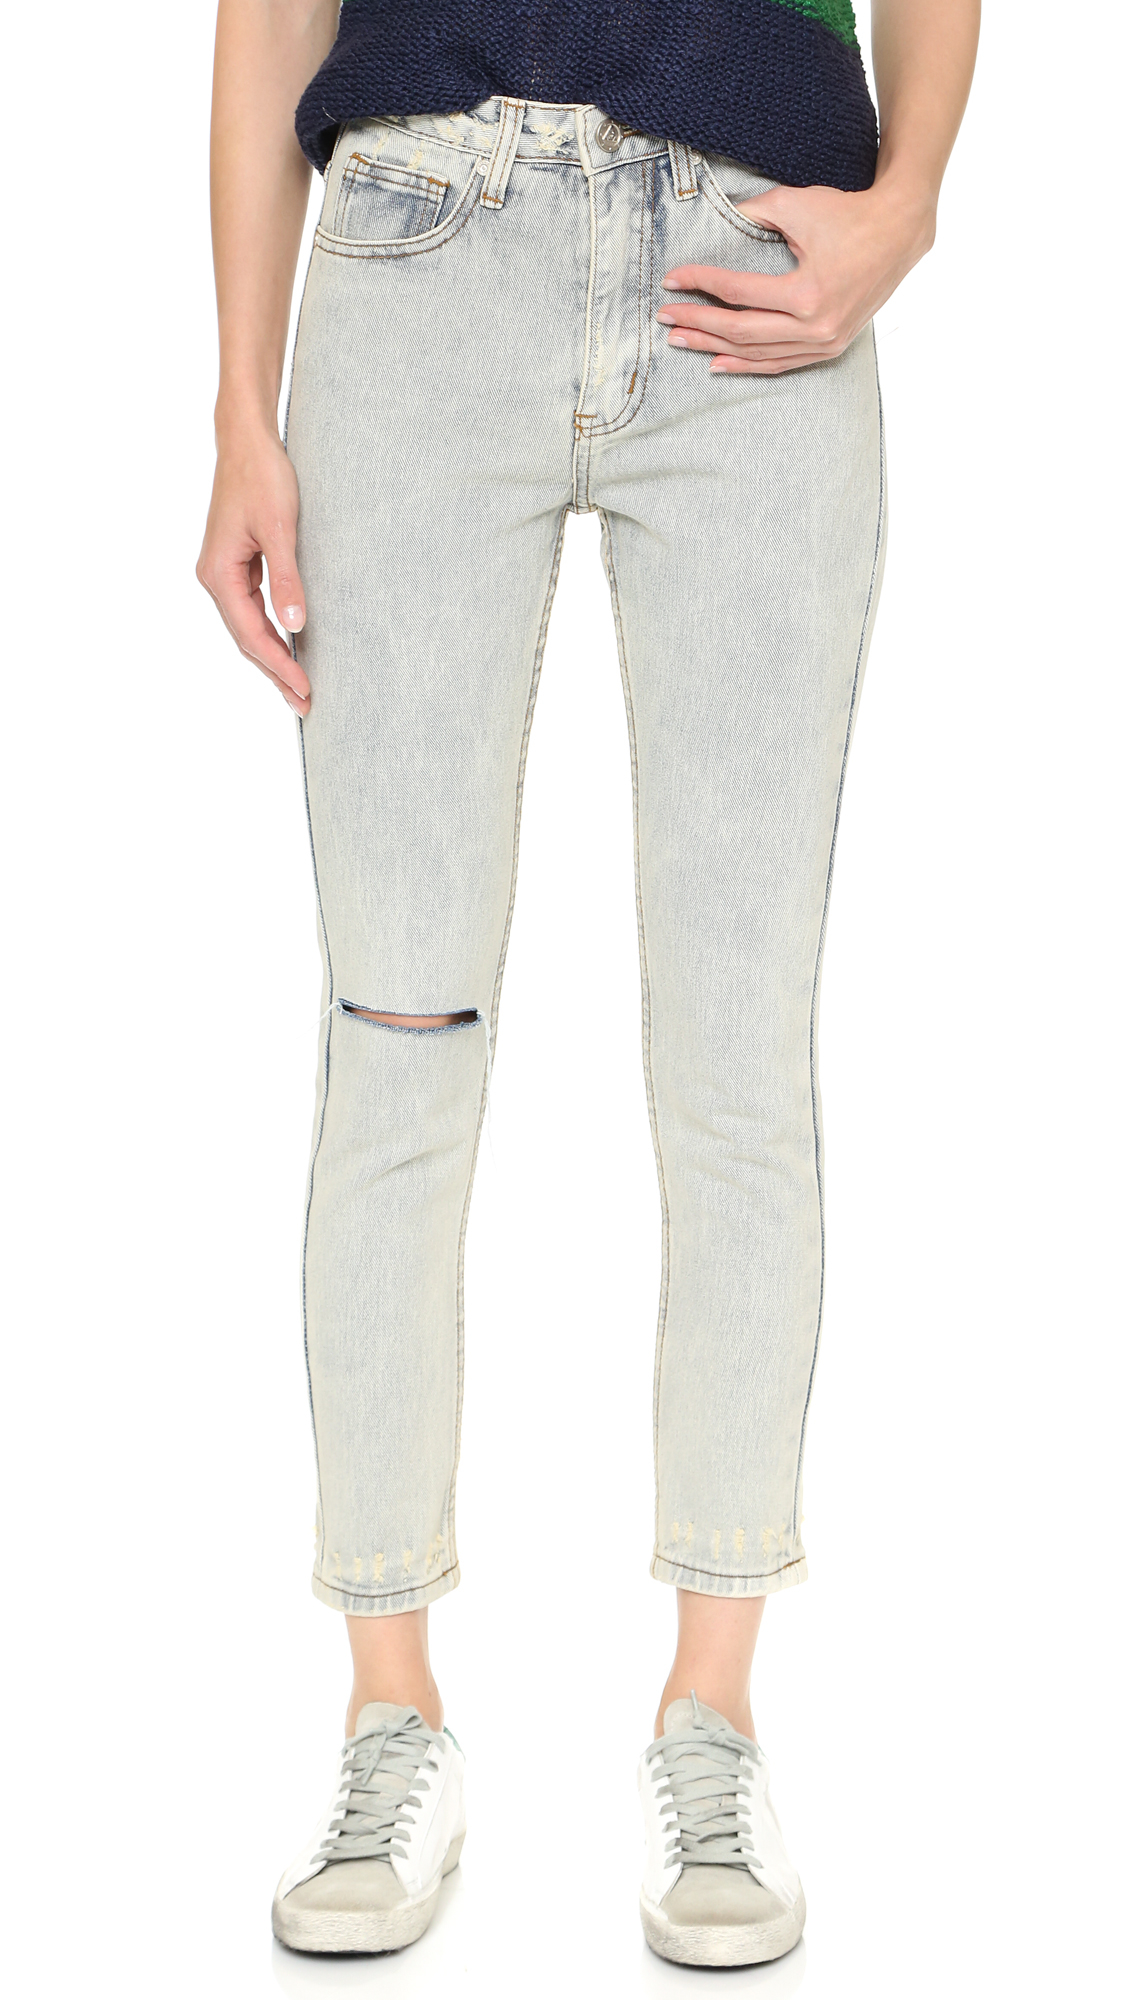 Lyst - Unif Bab High Rise Jeans - Black in Blue